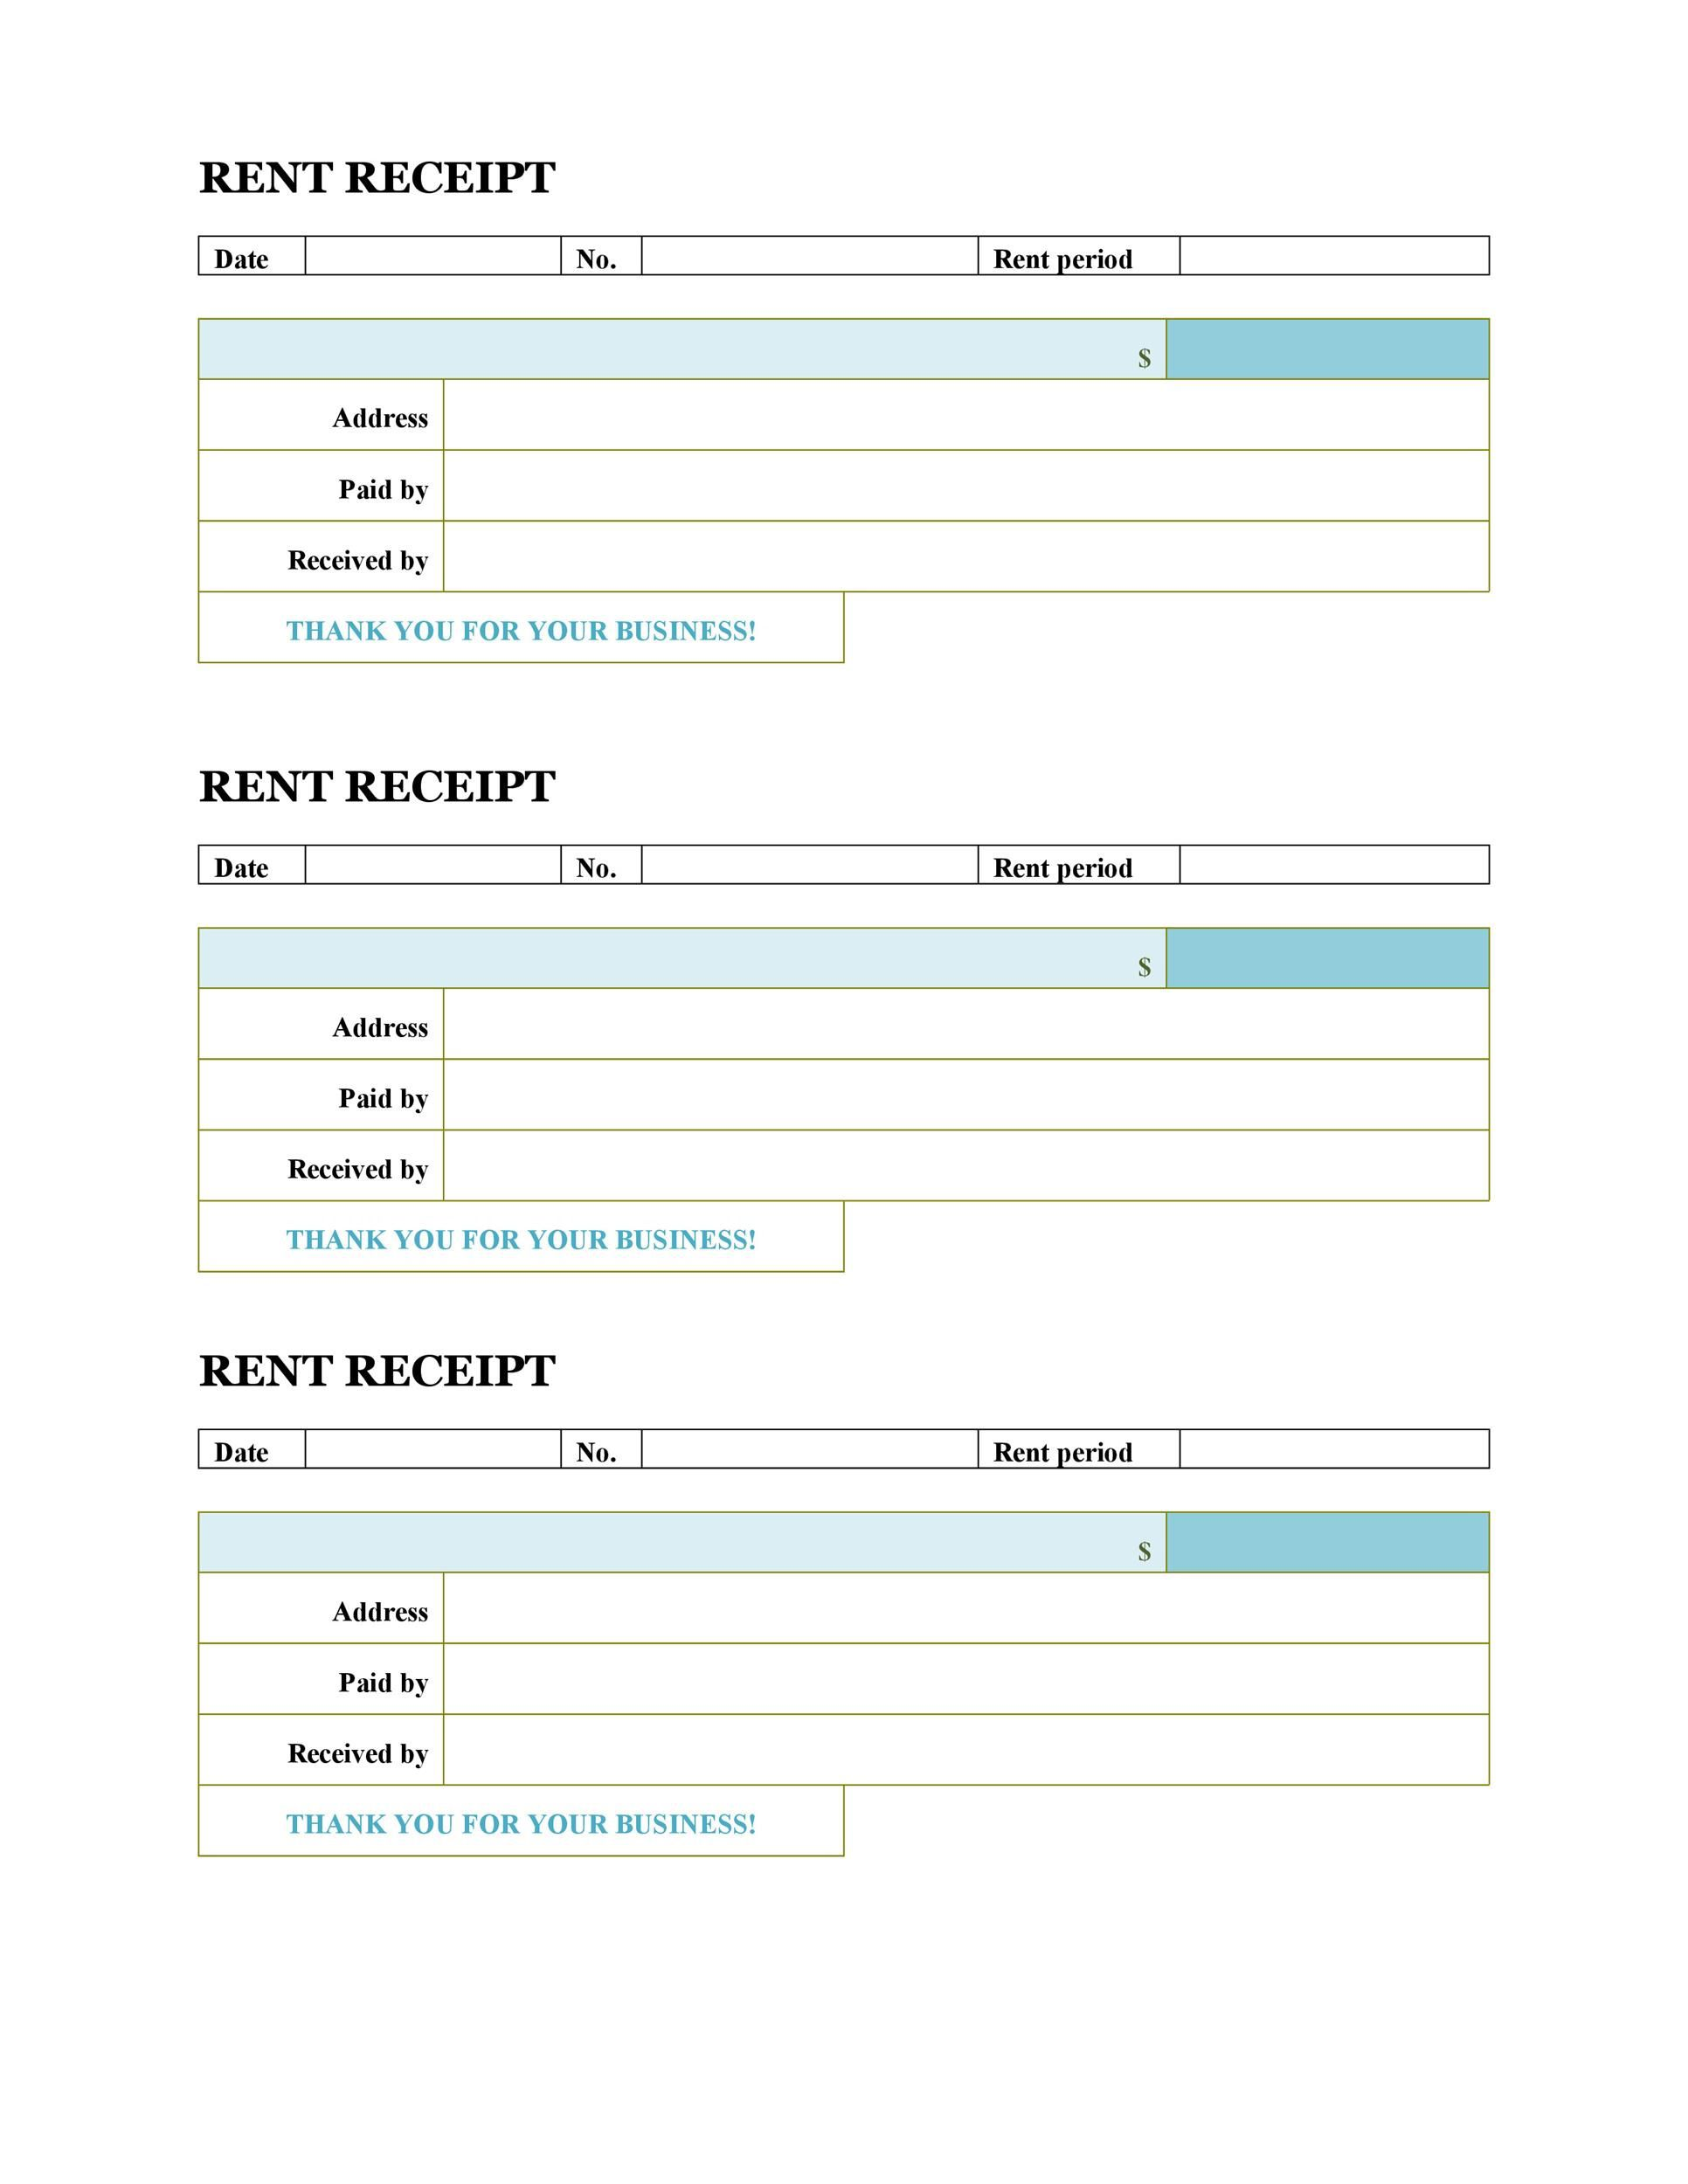 008 Unforgettable House Rent Receipt Template India Doc Sample  Format DownloadFull